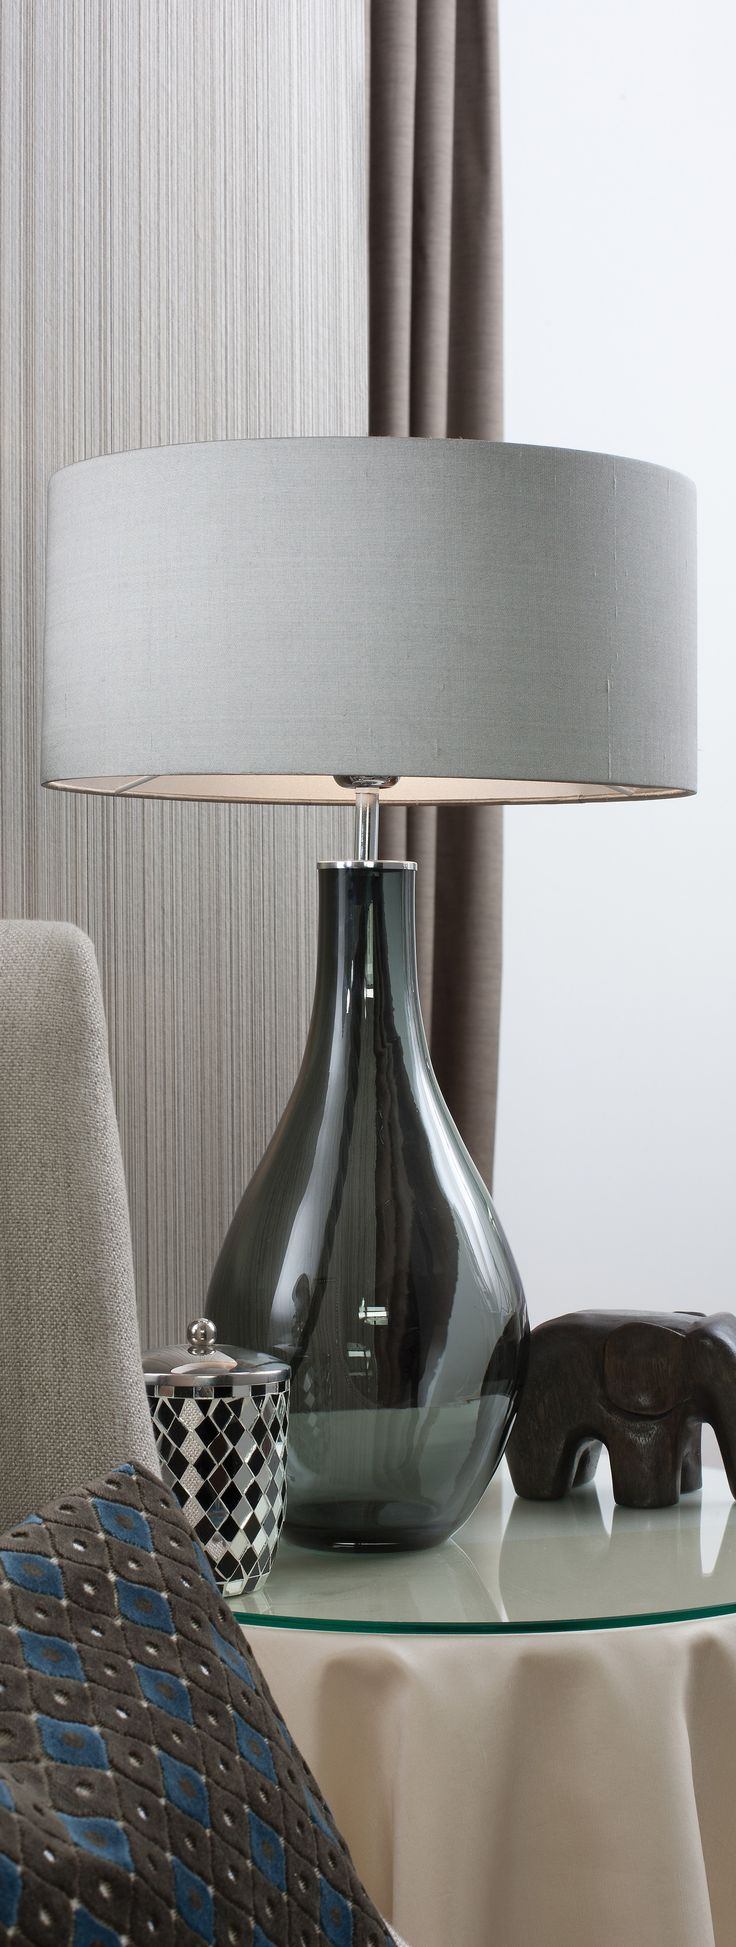 166 best images about floor table desk lamps on - Modern table lamps for living room ...